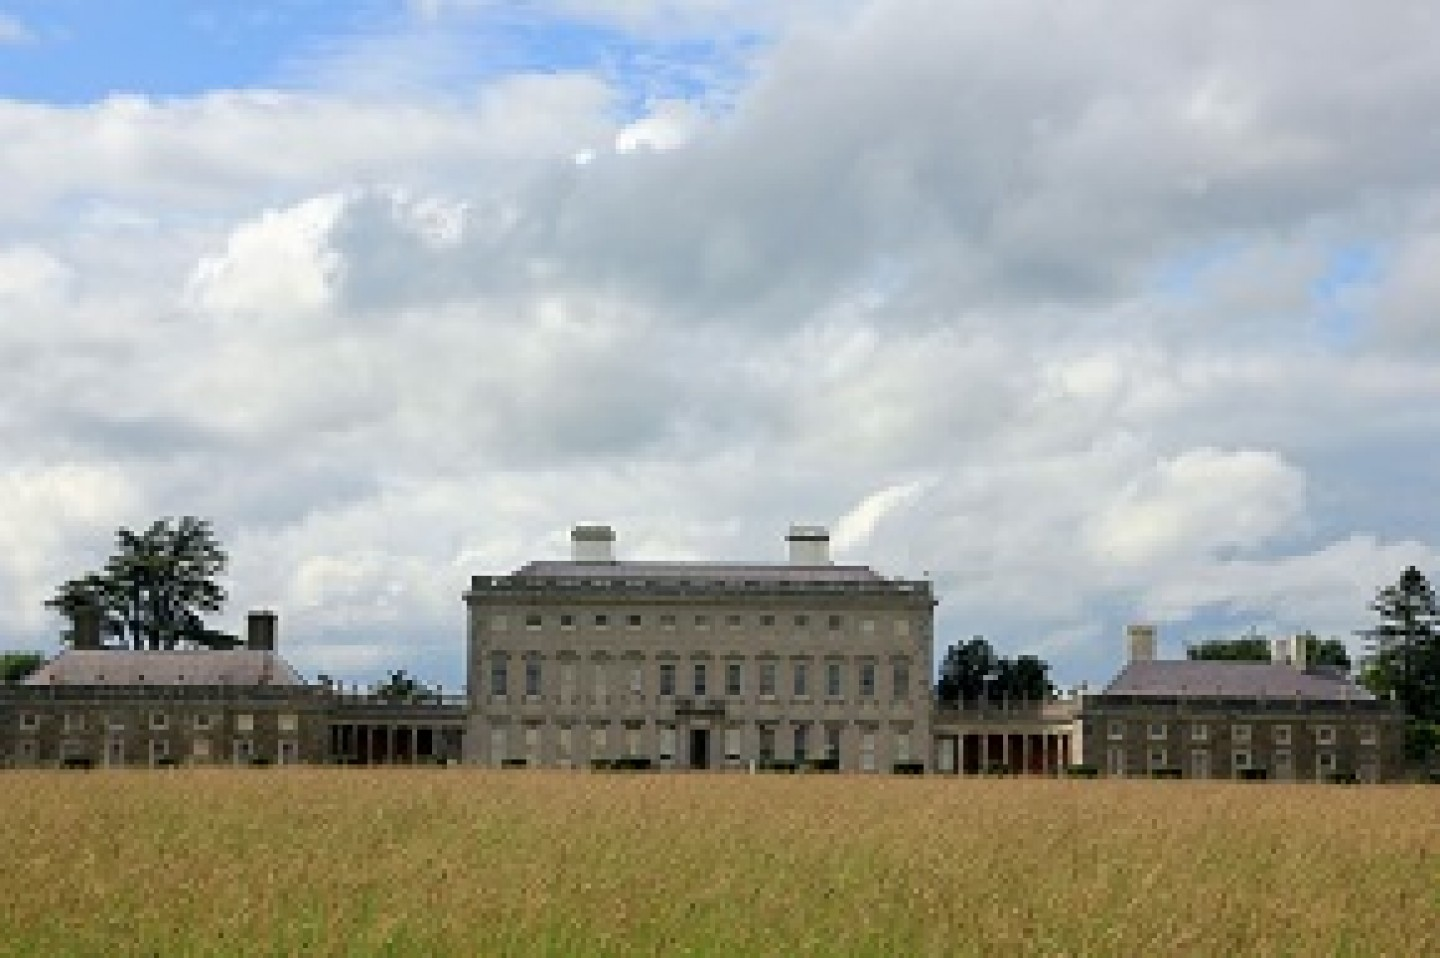 Castletown House Celbridge